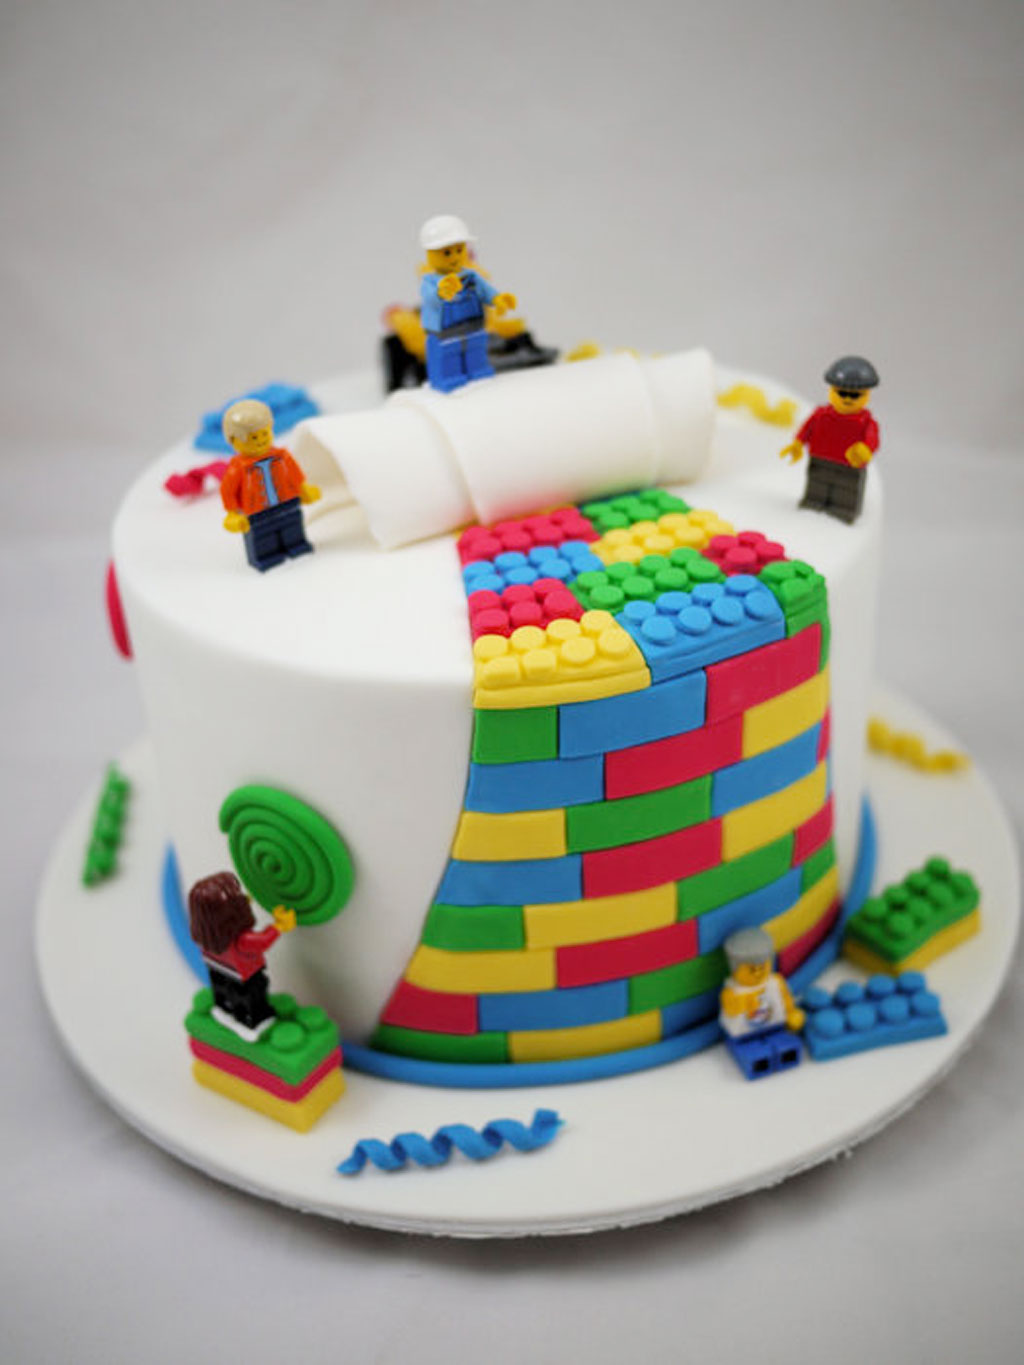 lego birthday cake decorating birthday cake cake ideas by. Black Bedroom Furniture Sets. Home Design Ideas